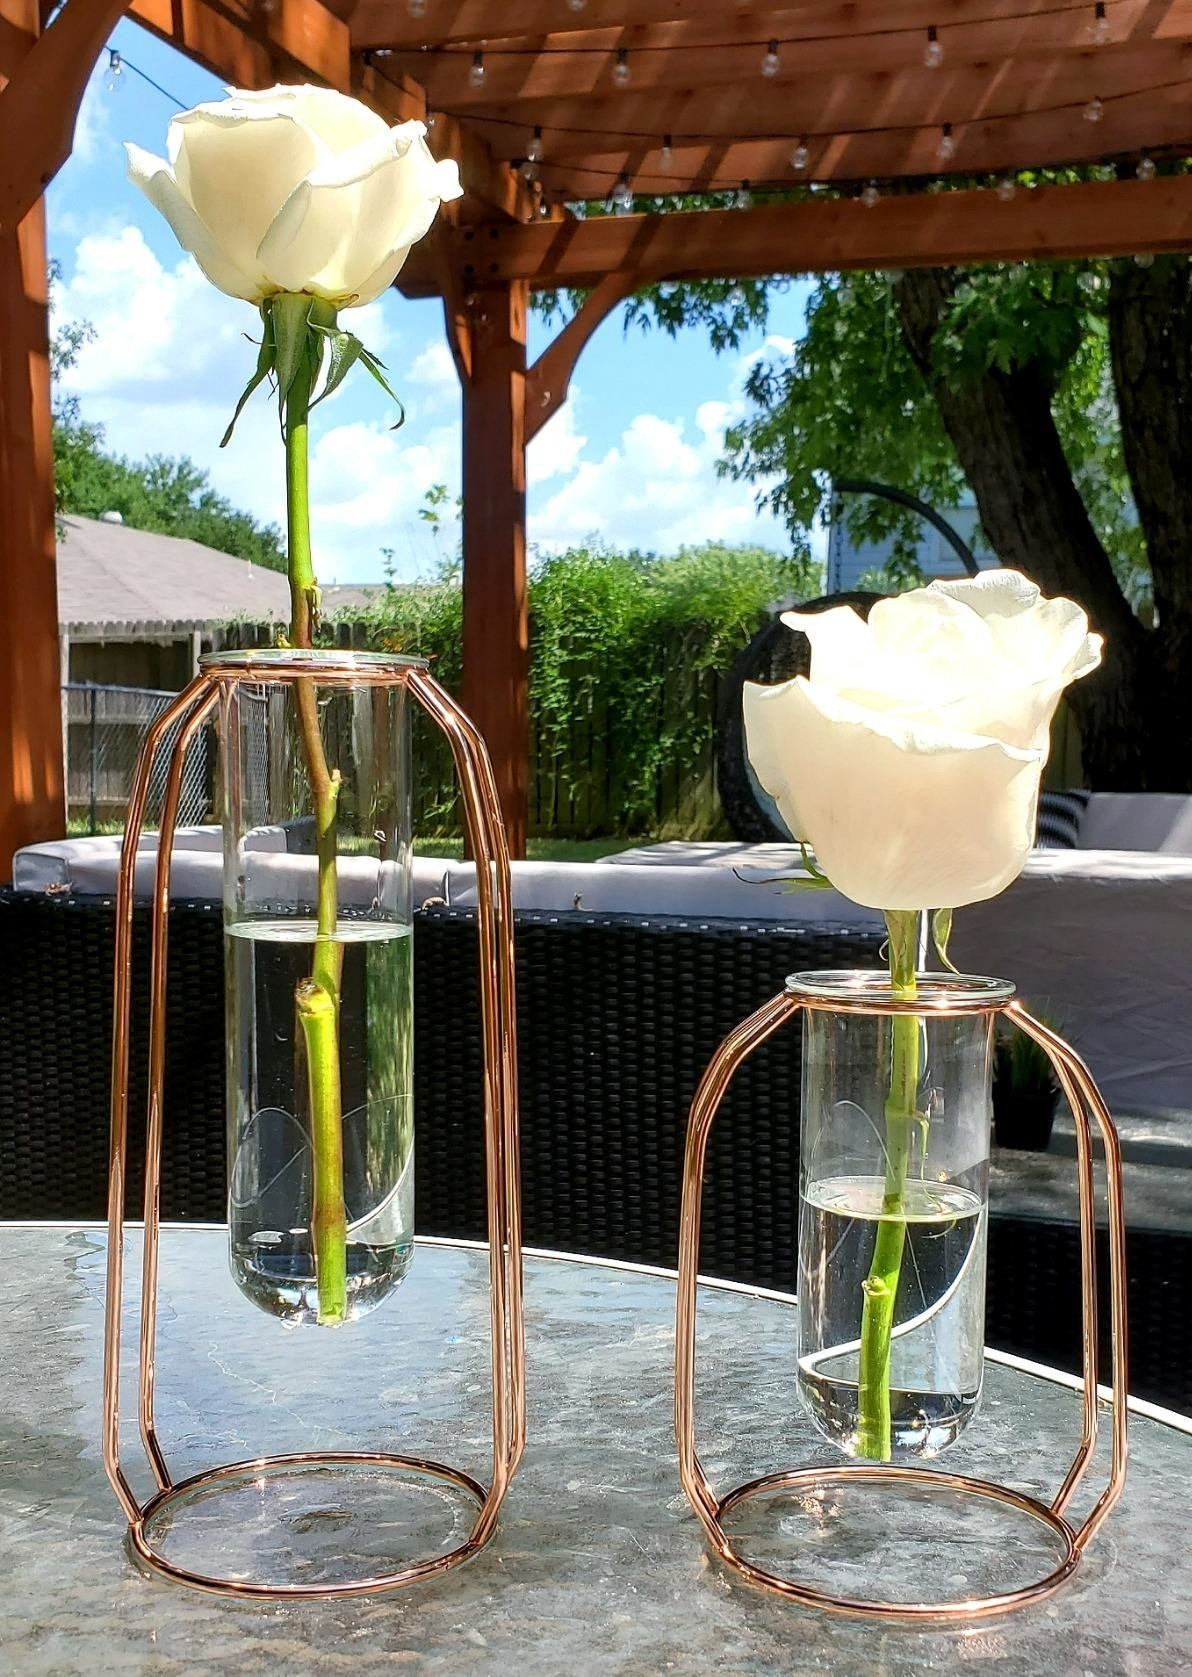 Reviewer vases on table with flowers in them